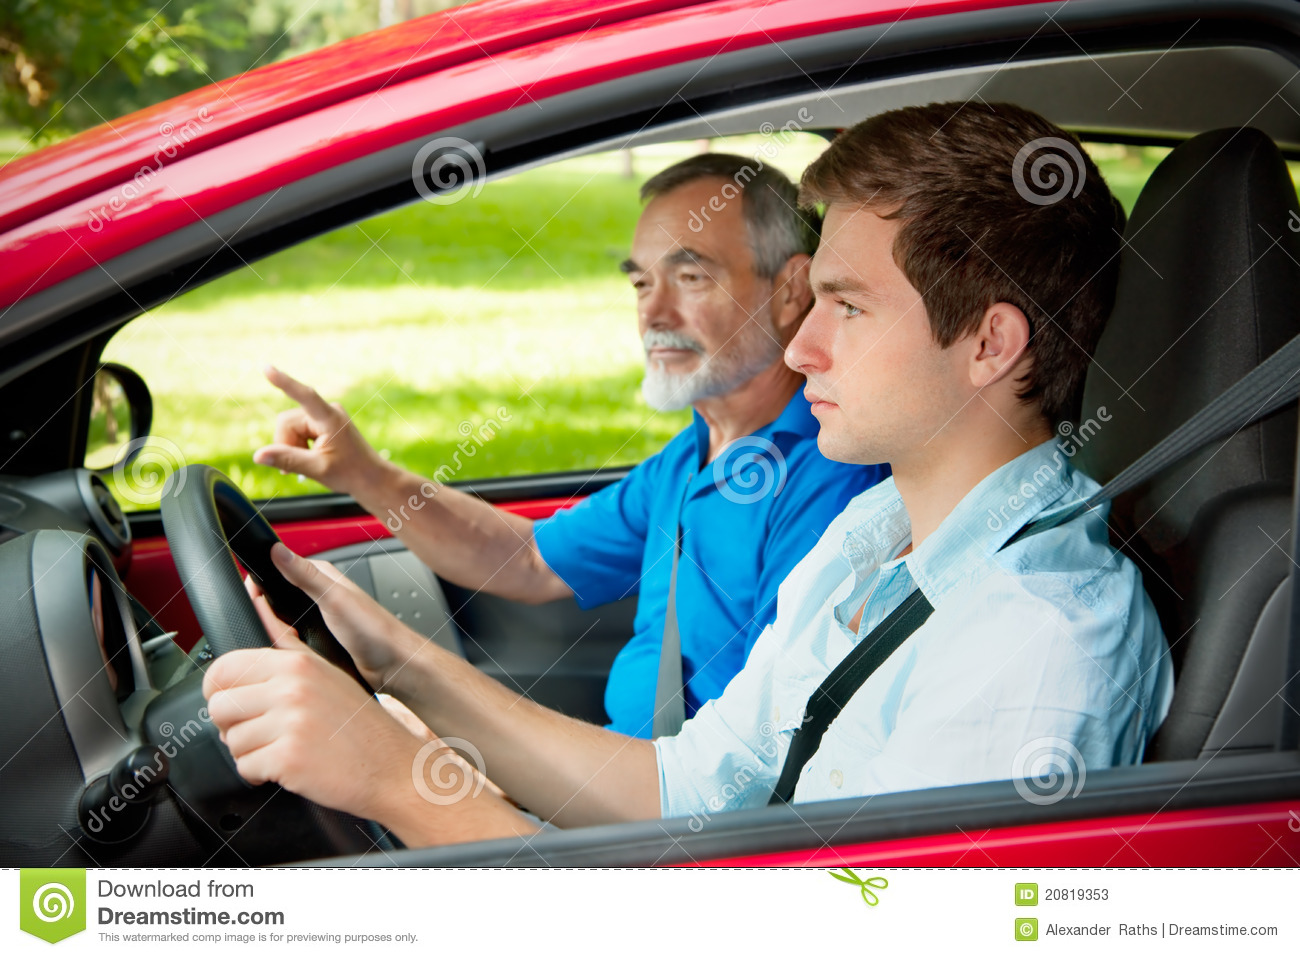 Driving Games - Free Online Driving Games